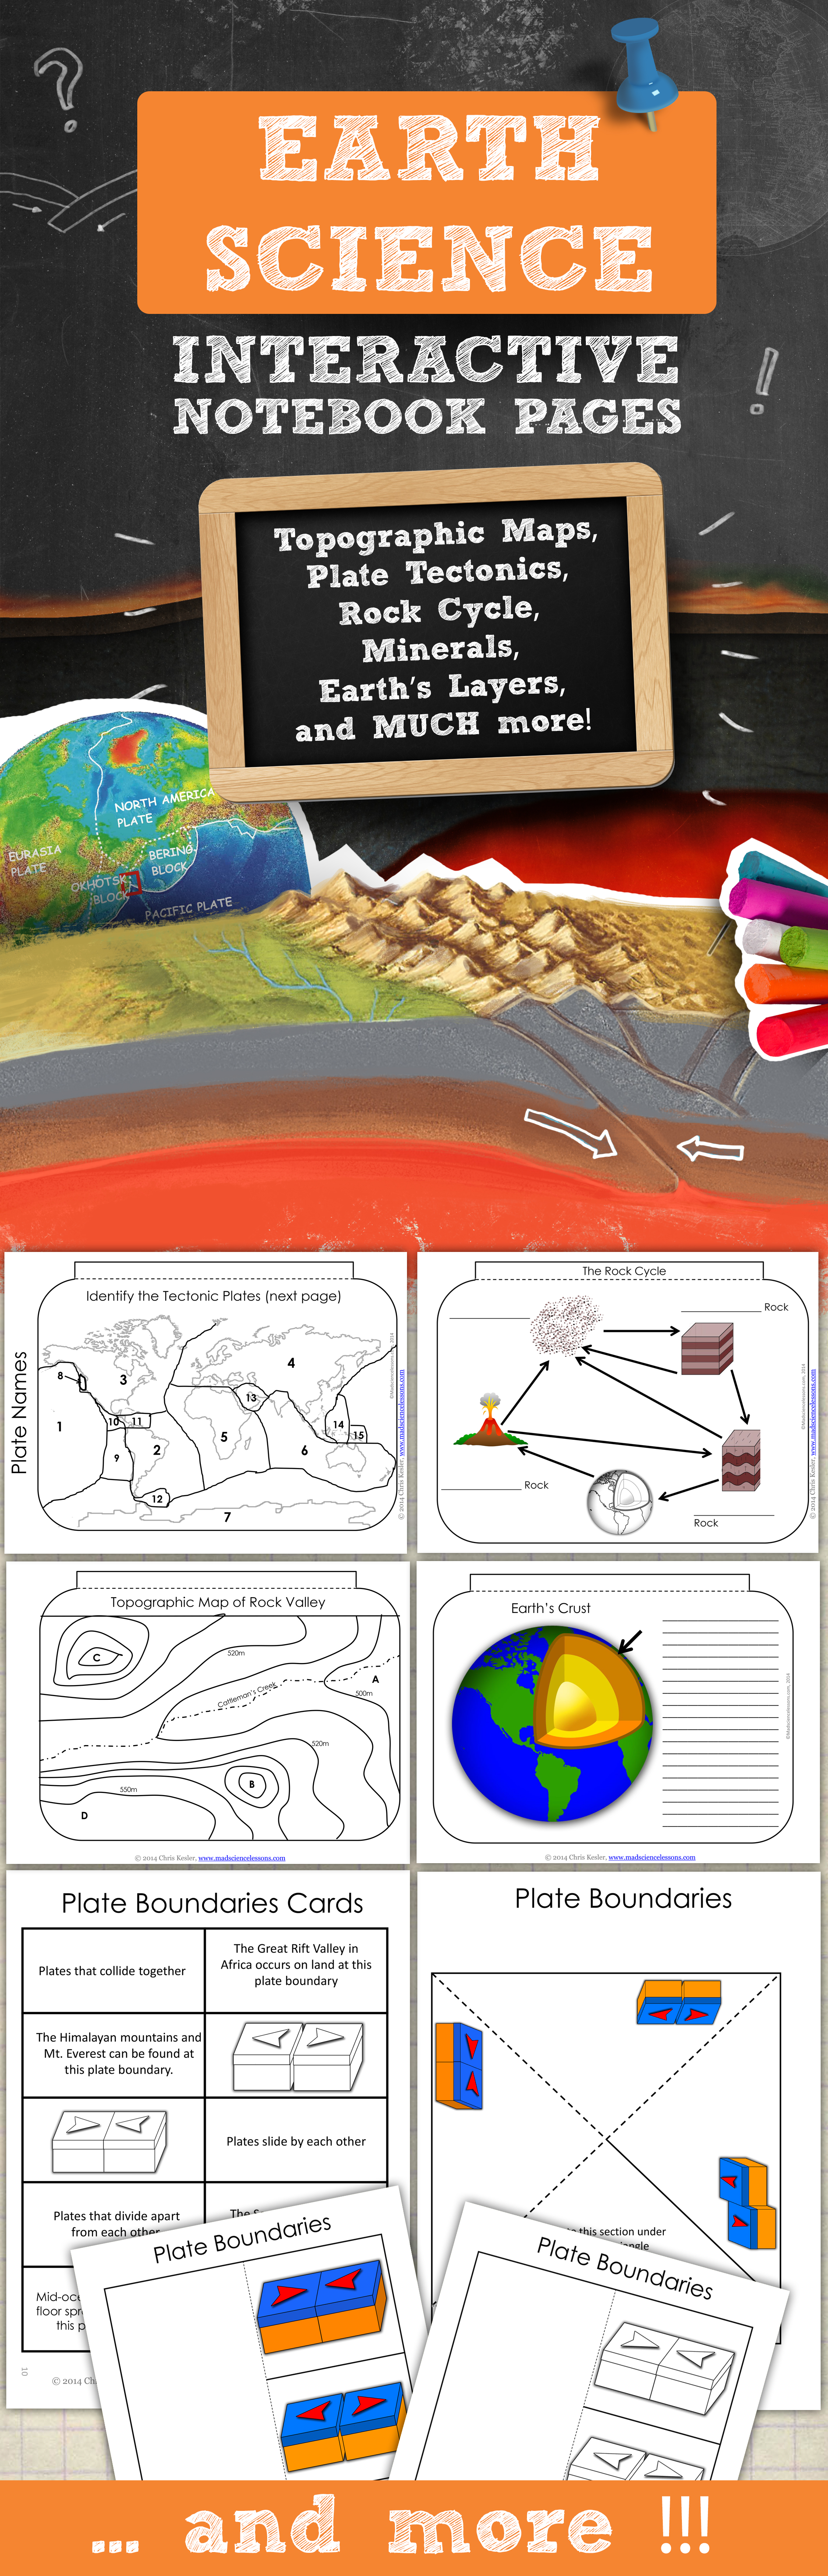 Earth Science Interactive Notebook Pages Print Digital Versions Interactive Science Notebook Earth Science Interactive Notebooks